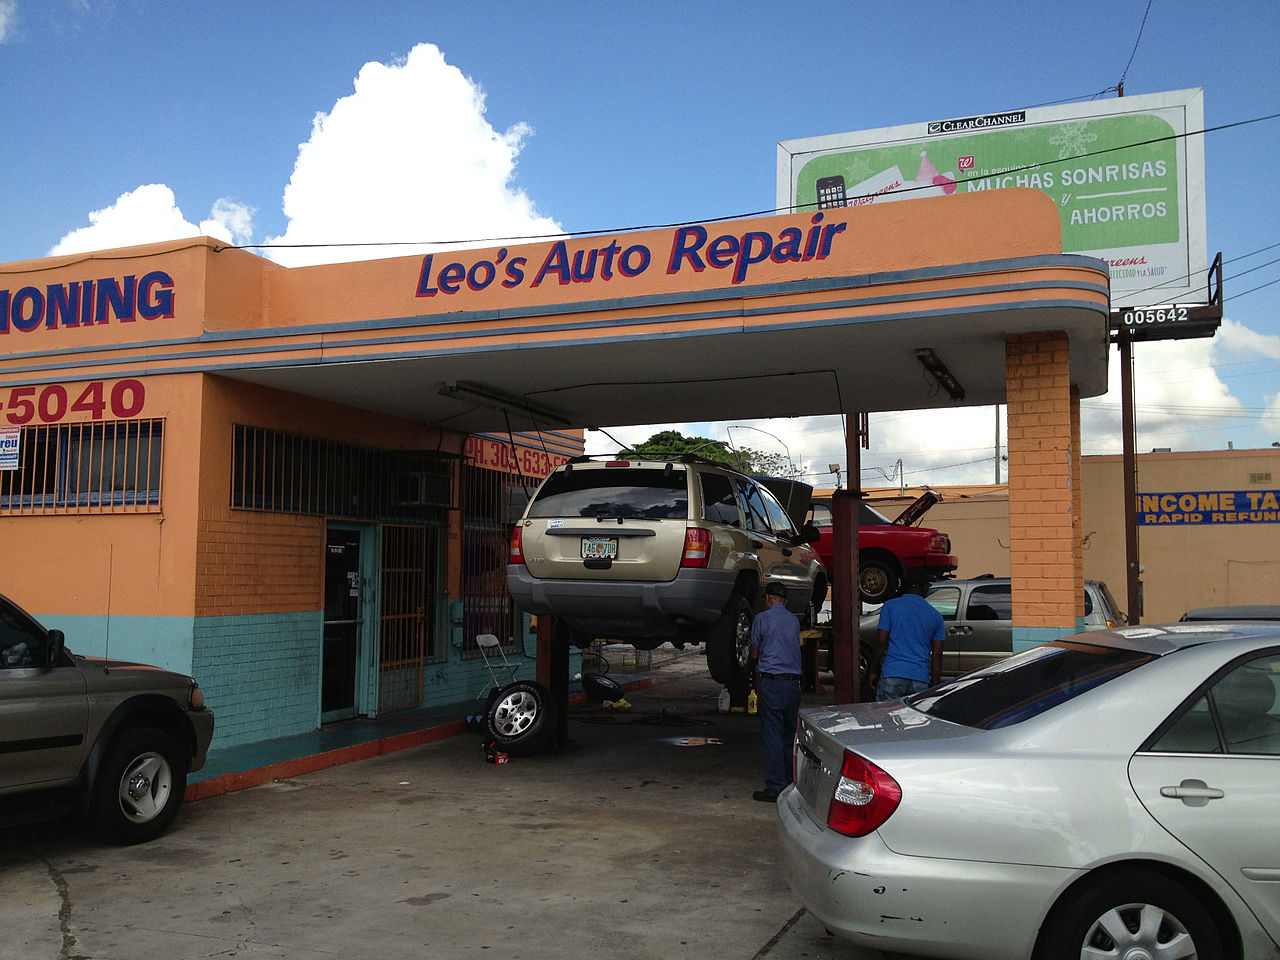 Auto Repair For Sale Miami: Survey: Over Half Of Indie Garage Owners Want To Sell Or